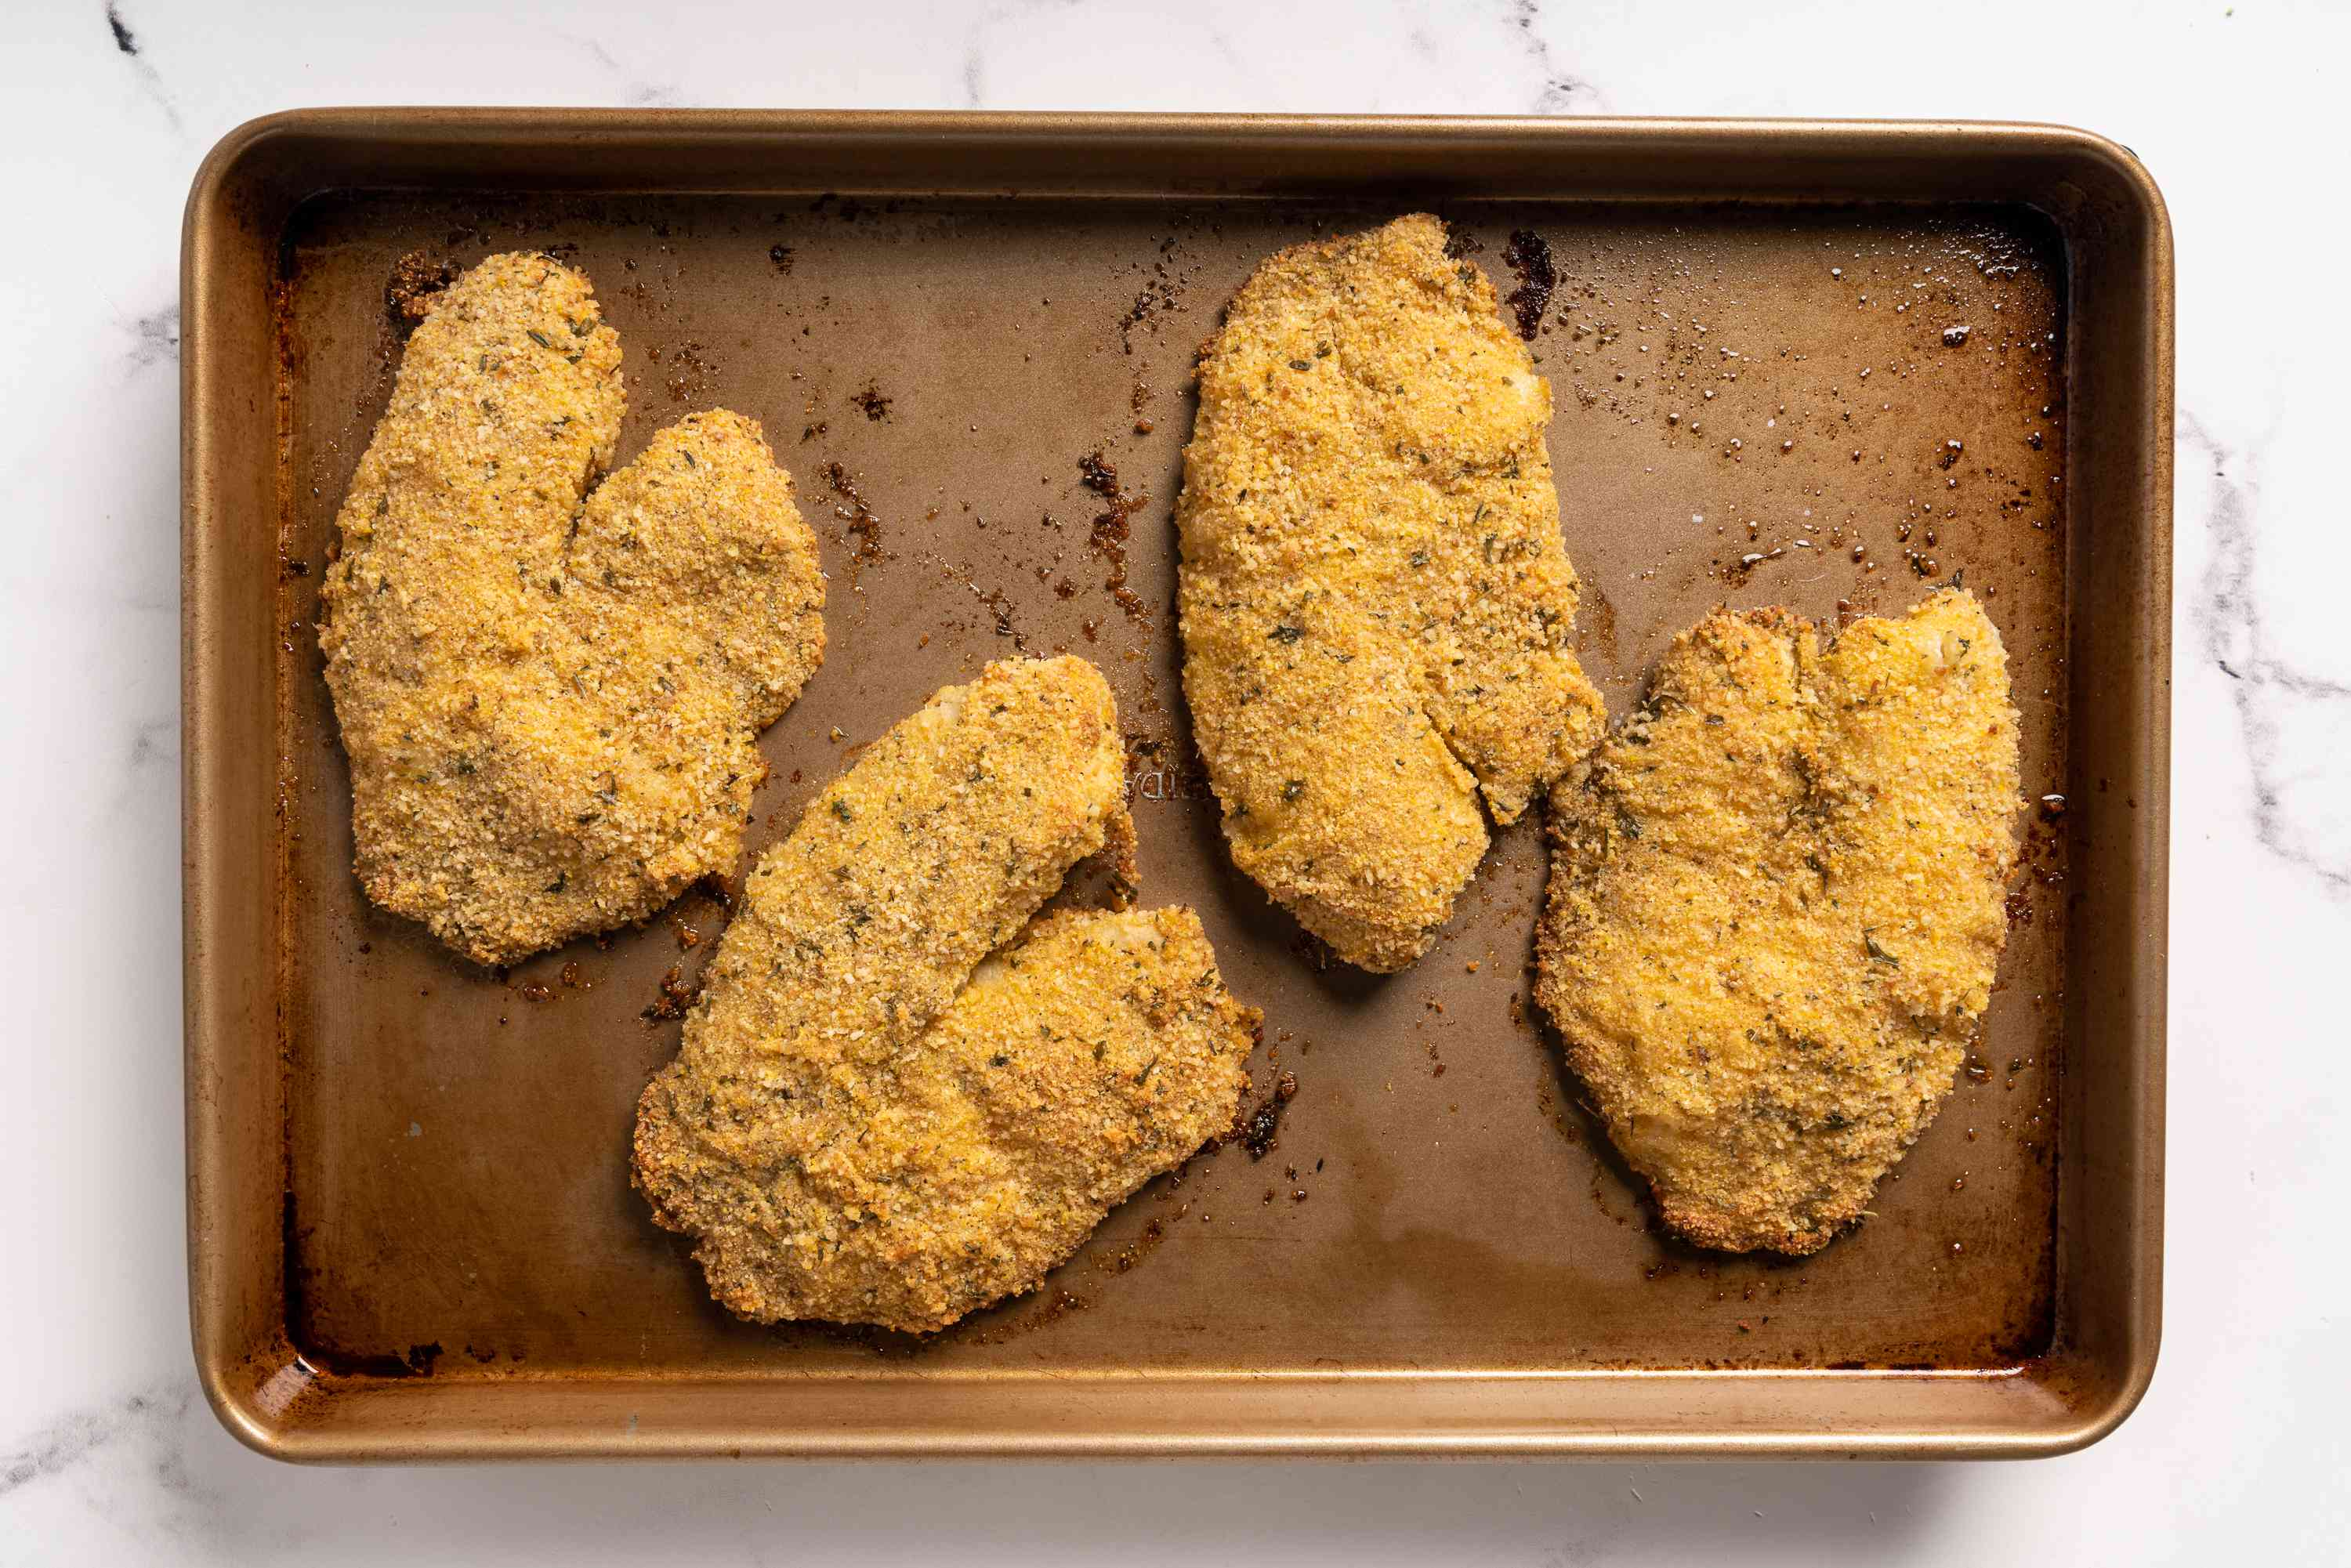 Simple Oven-Fried Tilapia on a baking sheet